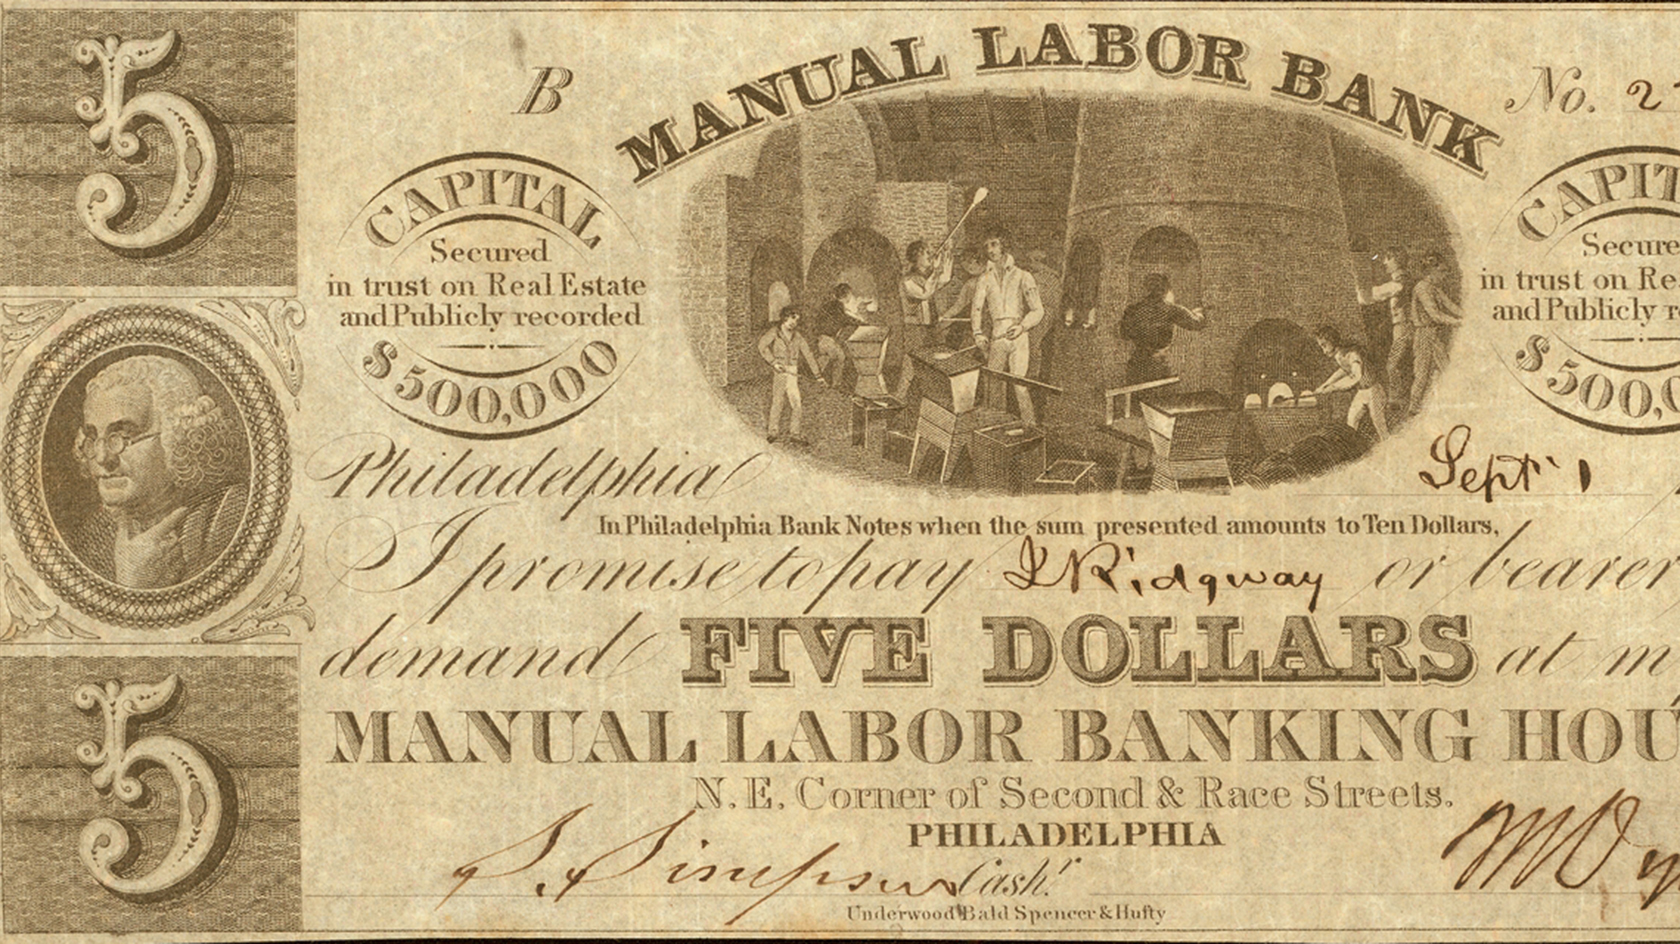 Glasshouse Bill for Five Dollars (detail), Manual Labor Bank, Philadelphia, 1837. Glasshouse money collection, 1762-2004. Gift of Frances Armentrout. CMGL 87849.